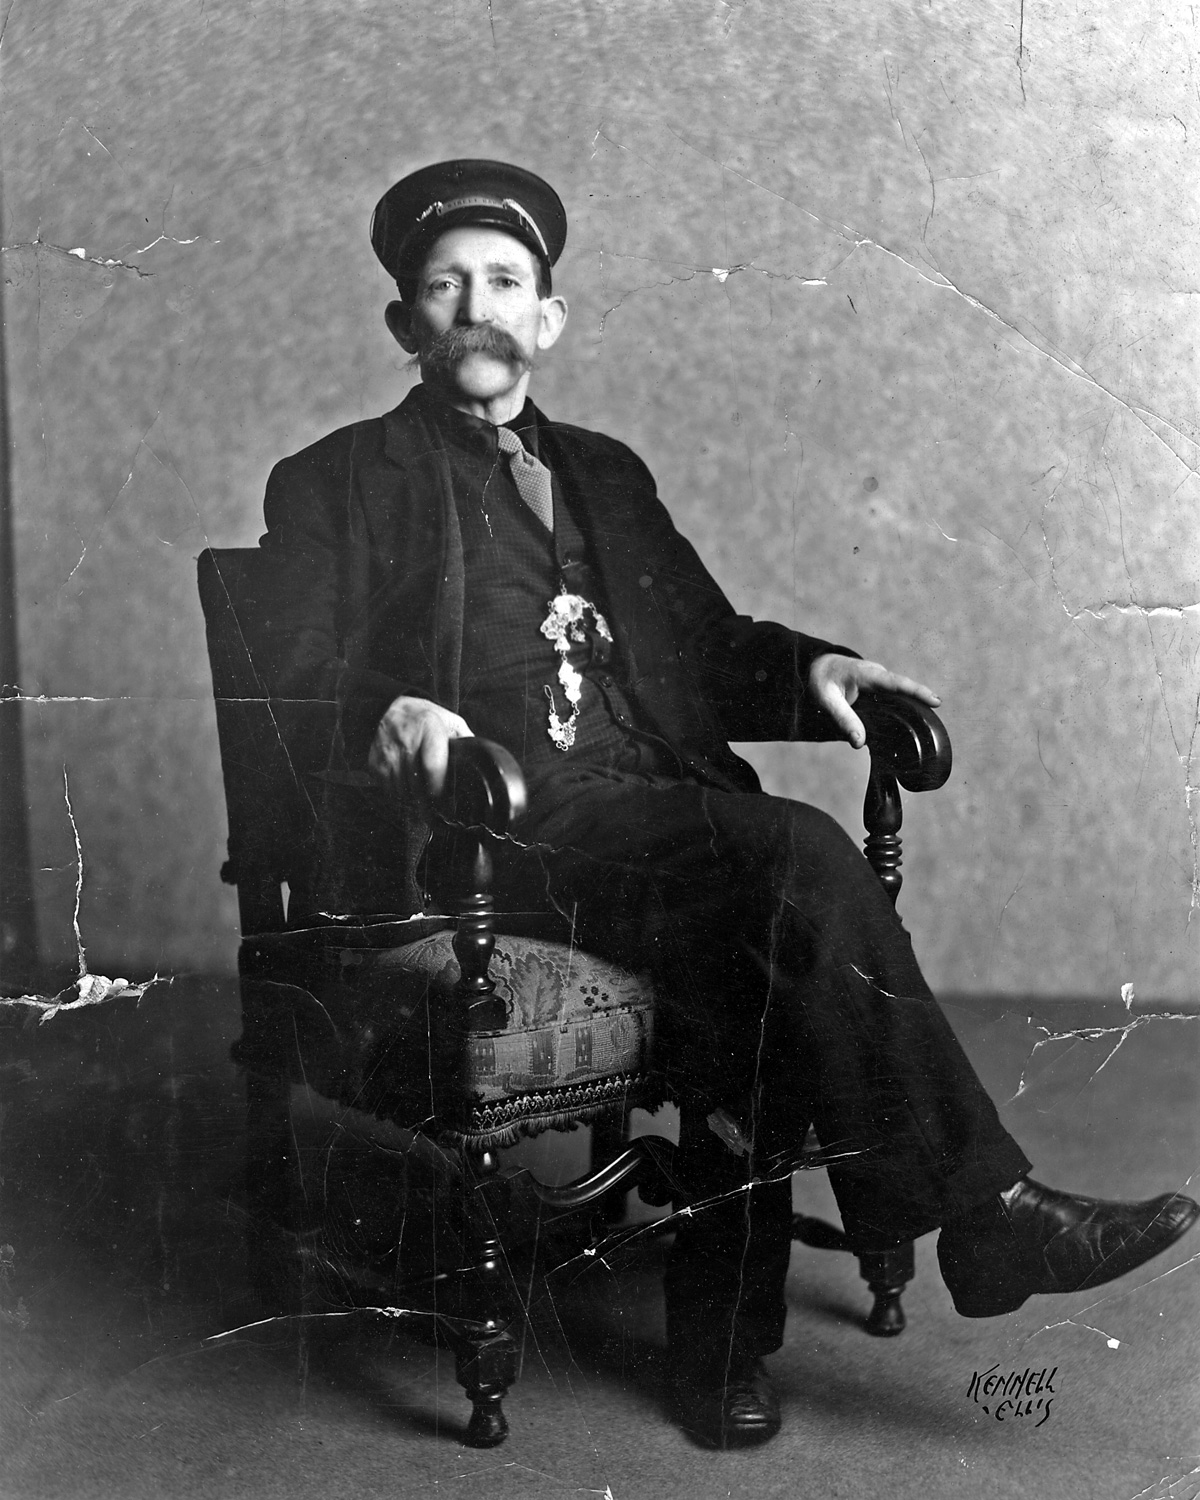 Black and white historic portrait photo of a man seated in a chair